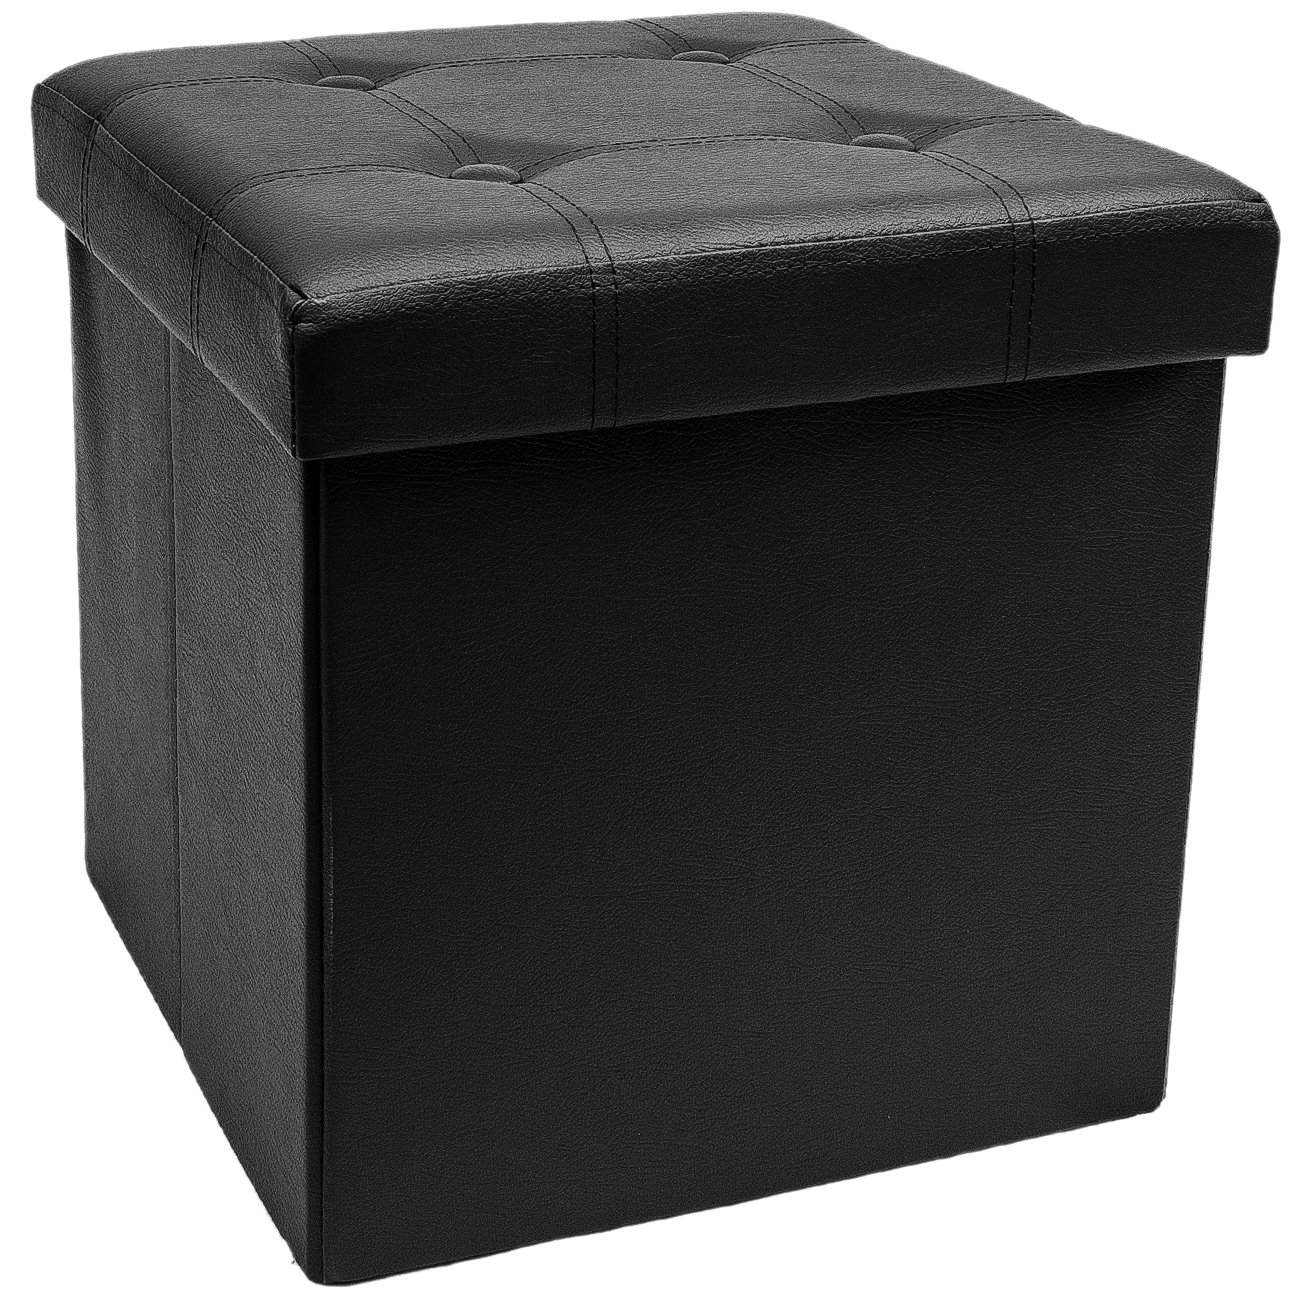 Sorbus Storage Ottoman Collapsible Folding Cube Ottoman with Cover Perfect Hassock, Foot Stool, Seat, Coffee Table, Storage Chest, and more Contemporary Faux leather Black